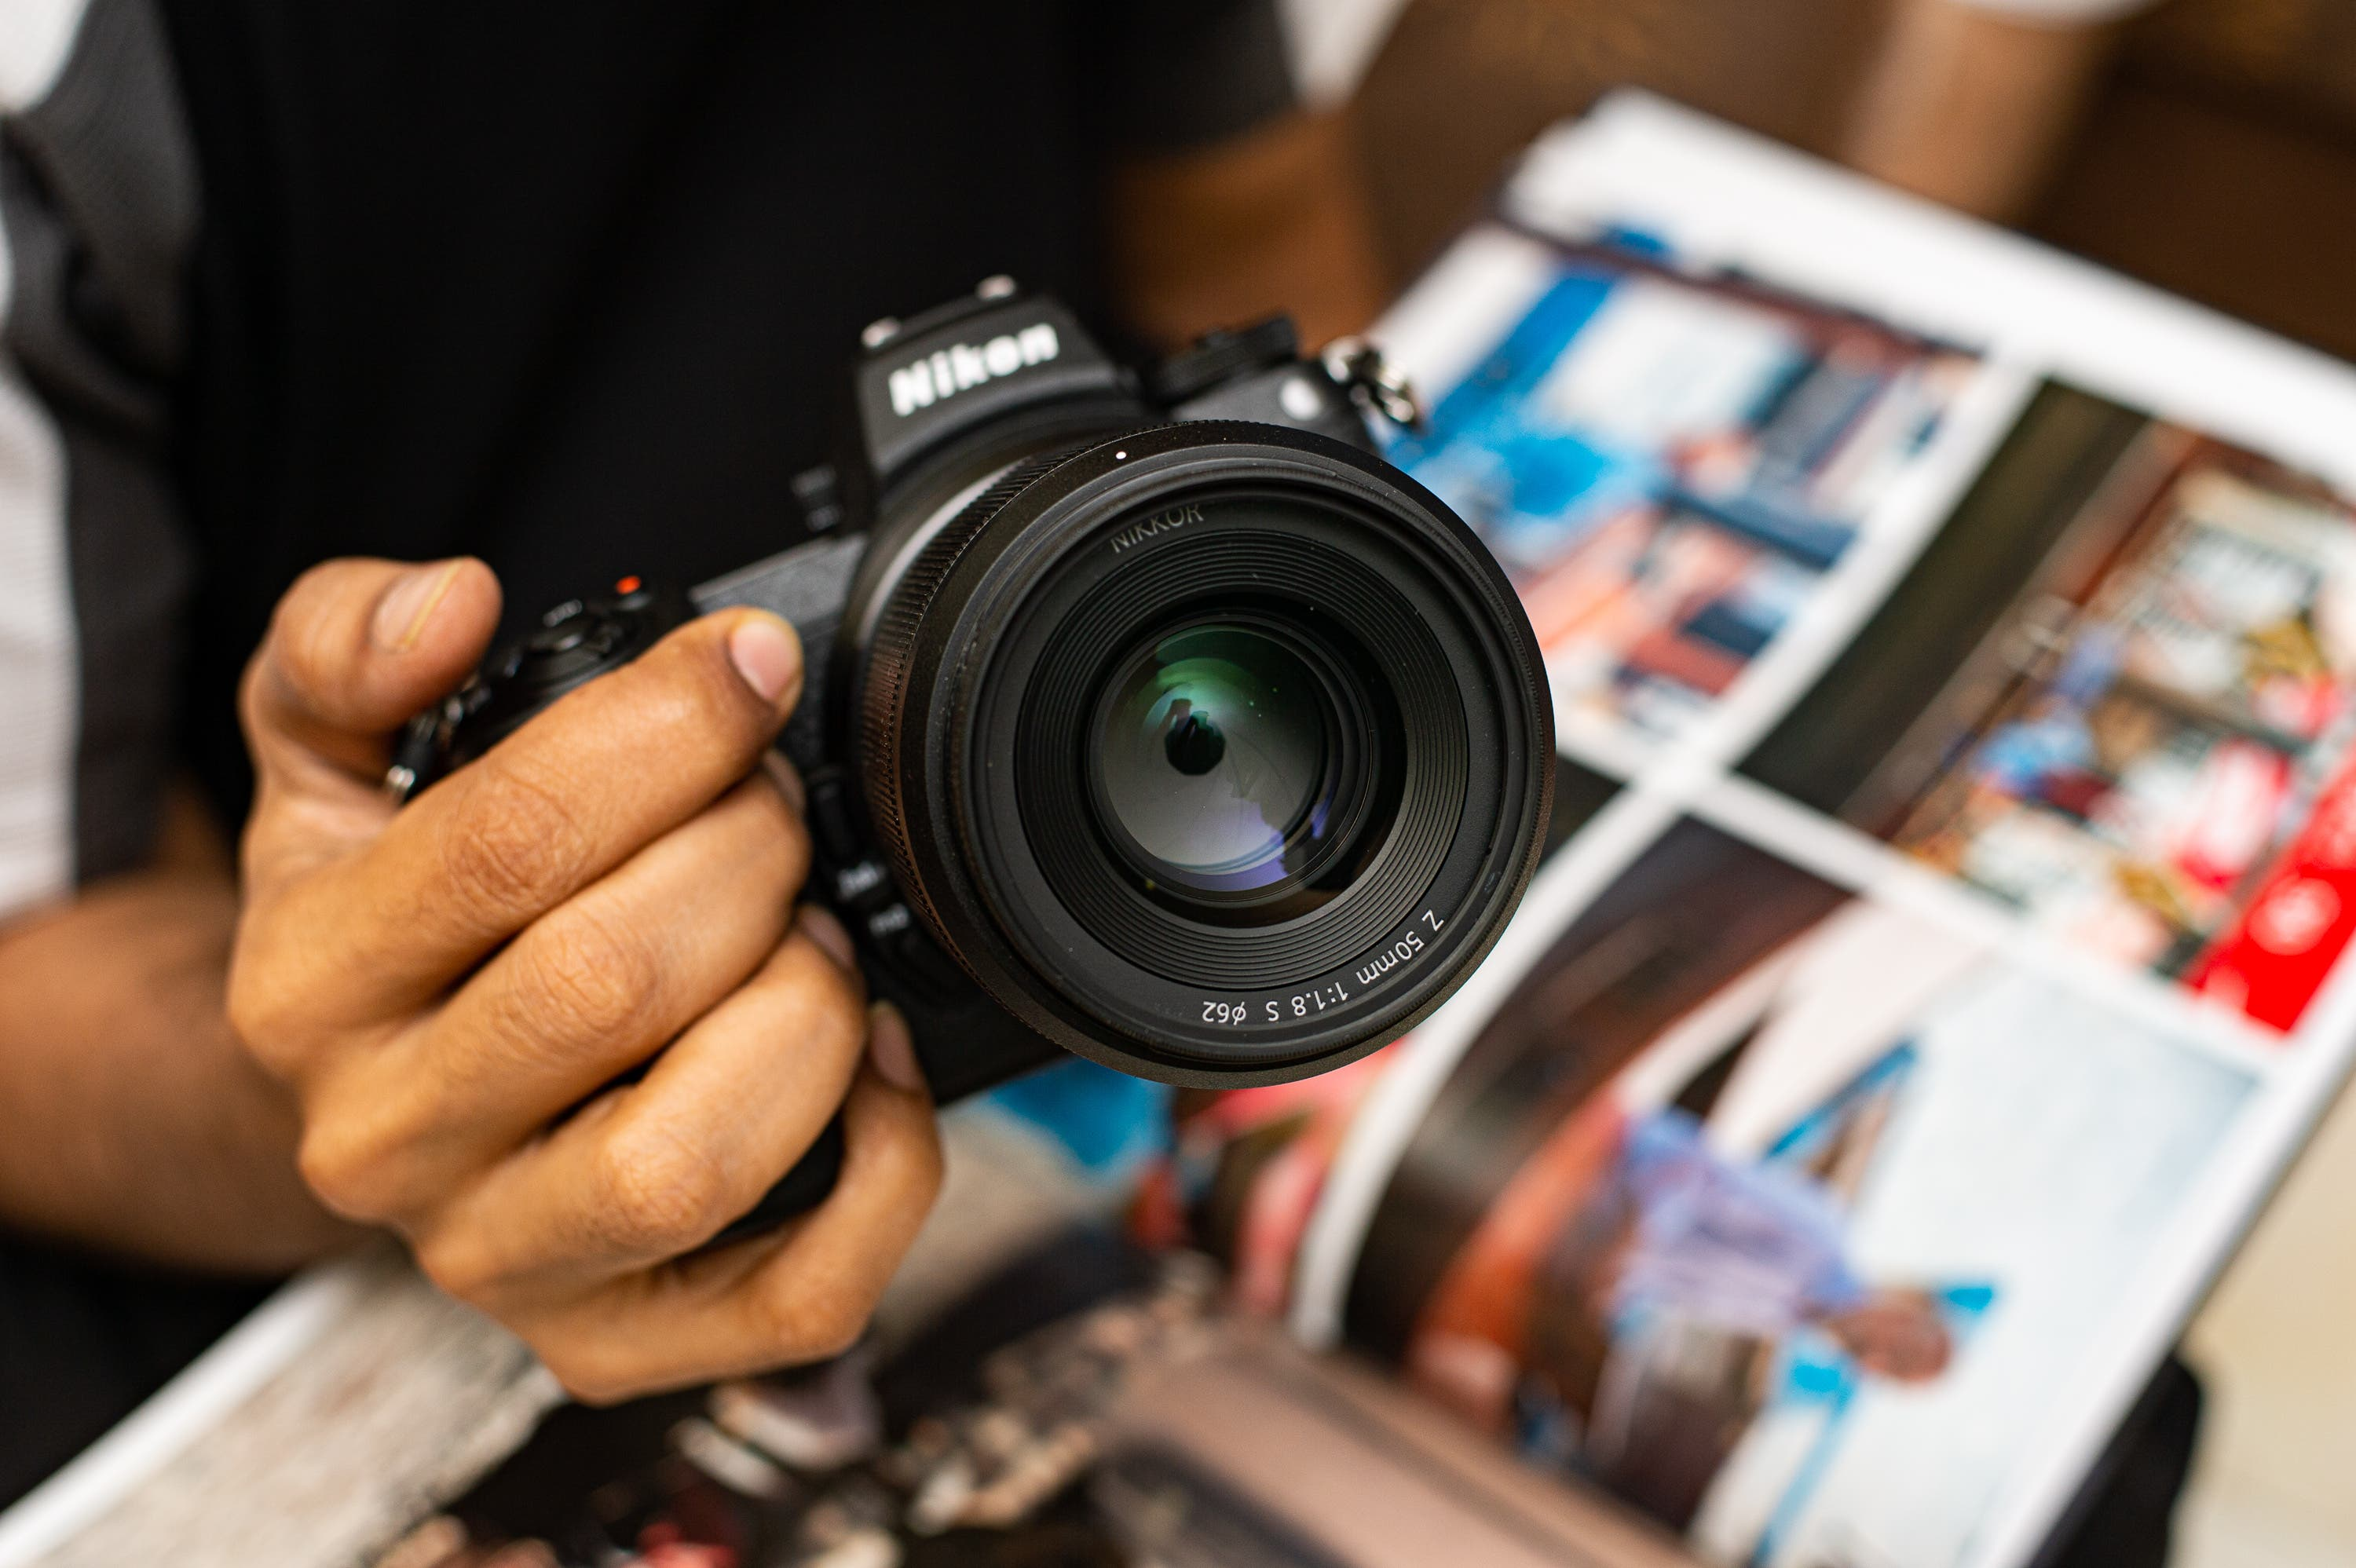 We've Updated Our Nikon 50mm F1.8 S Lens Review. The Lens Improved!